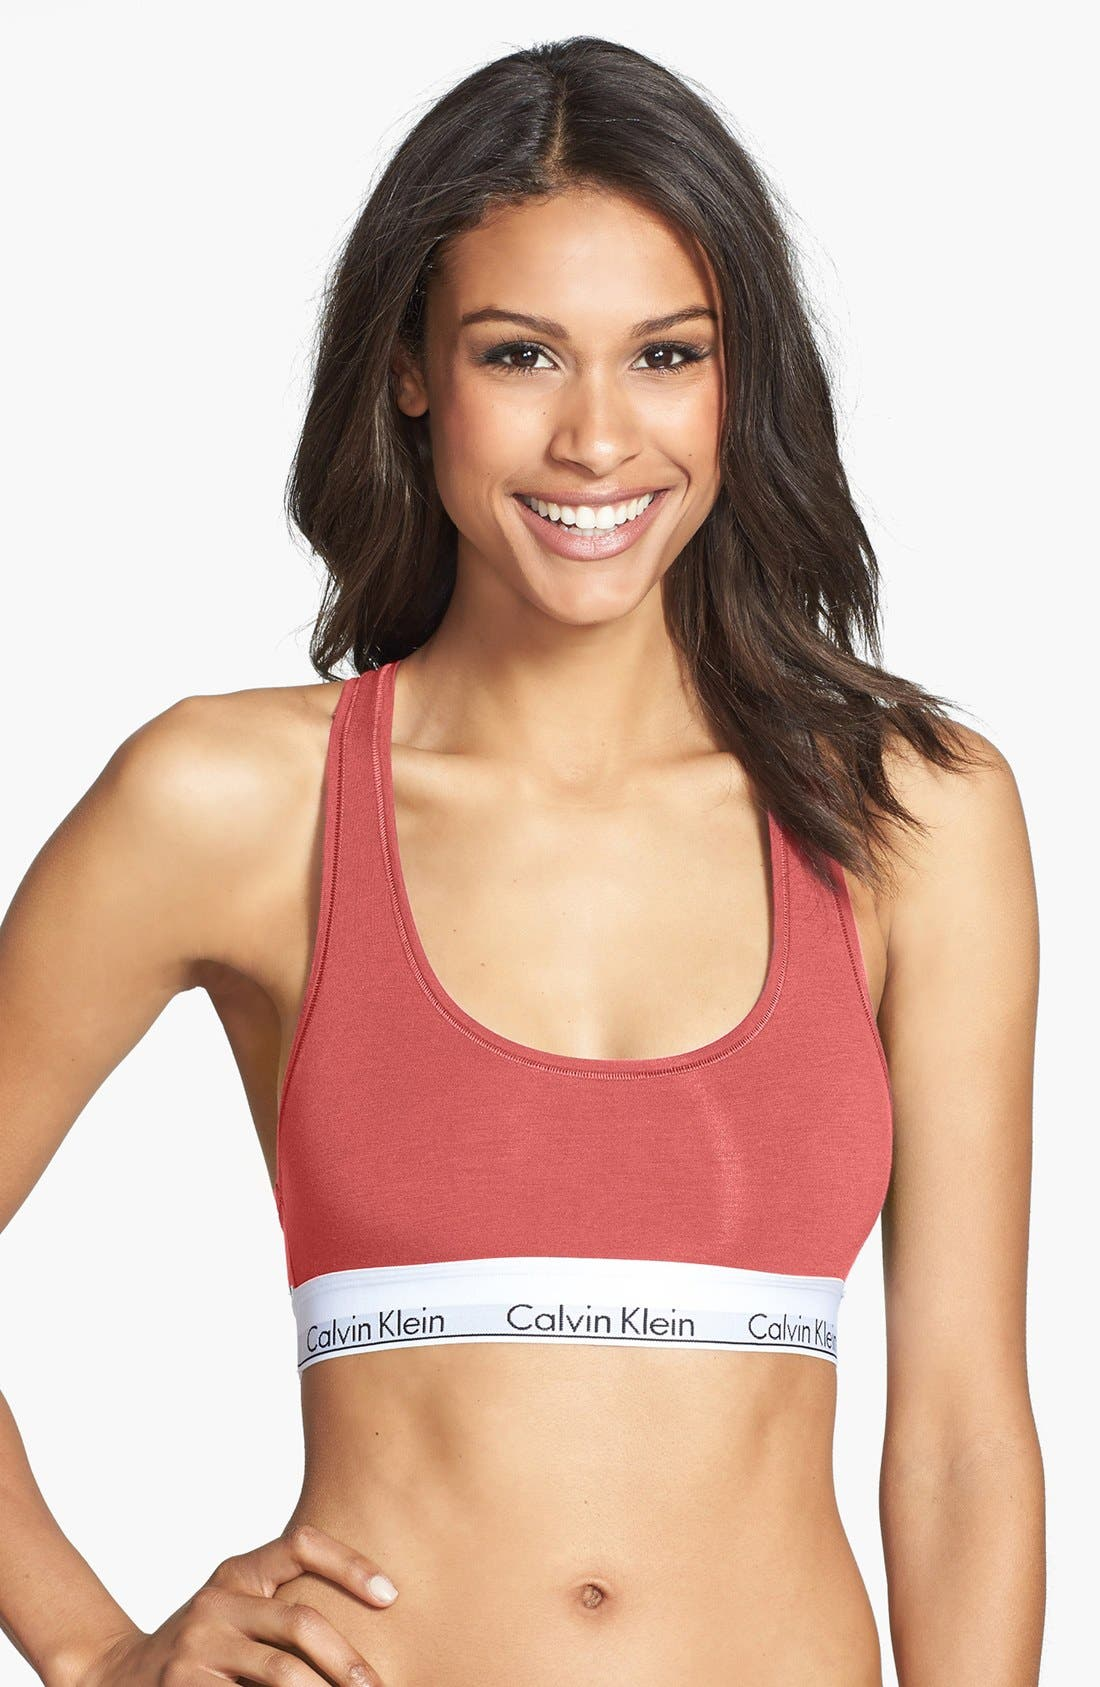 CALVIN KLEIN 'Modern Cotton Collection' Cotton Blend Racerback